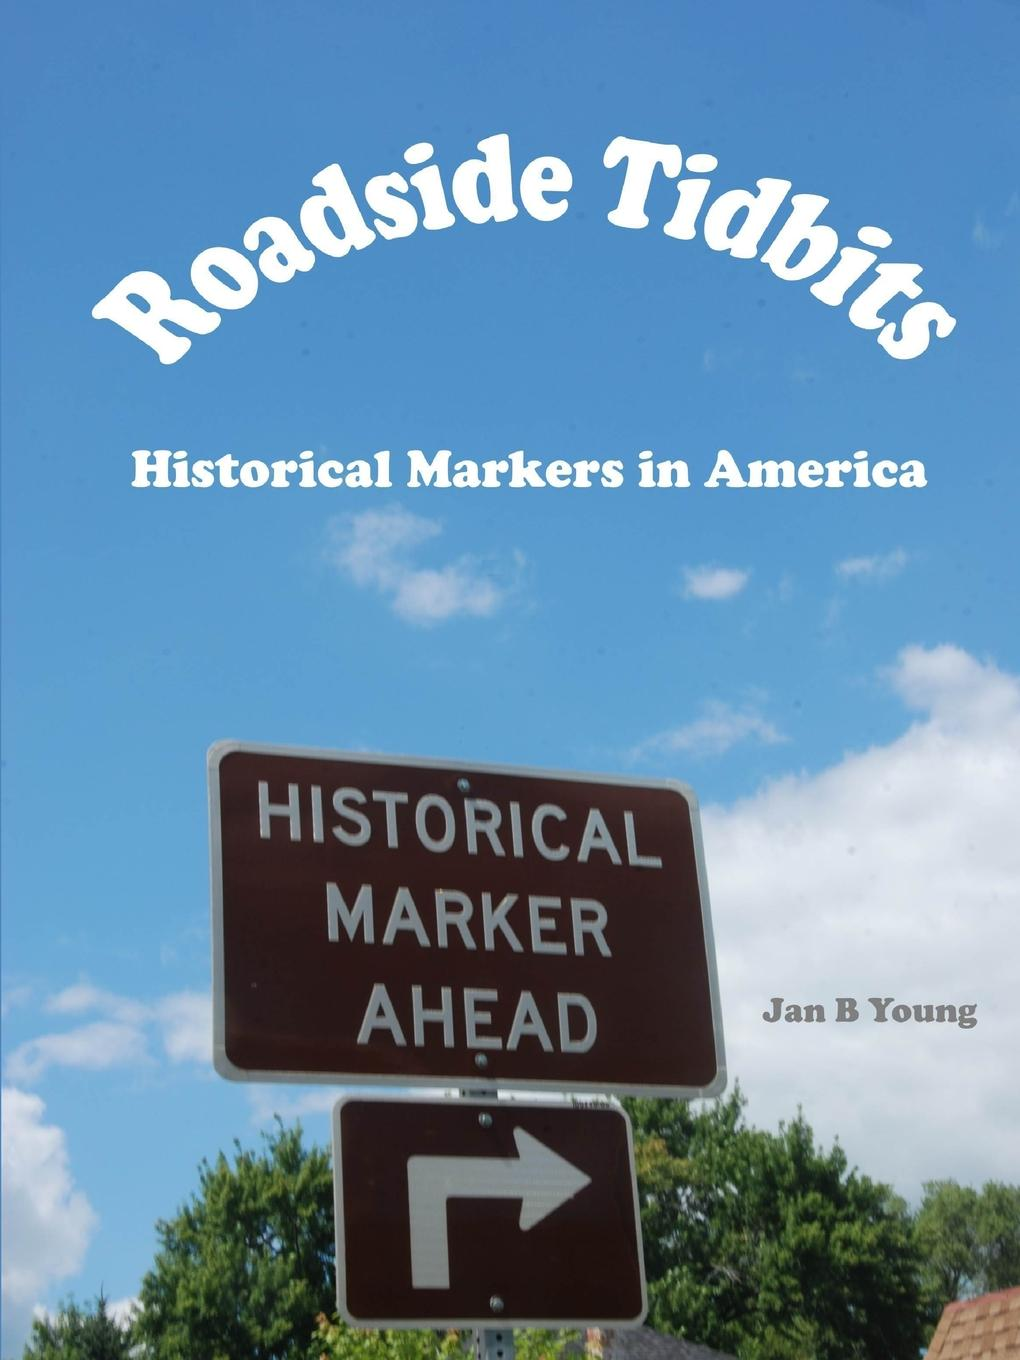 Jan Young Roadside Tidbits